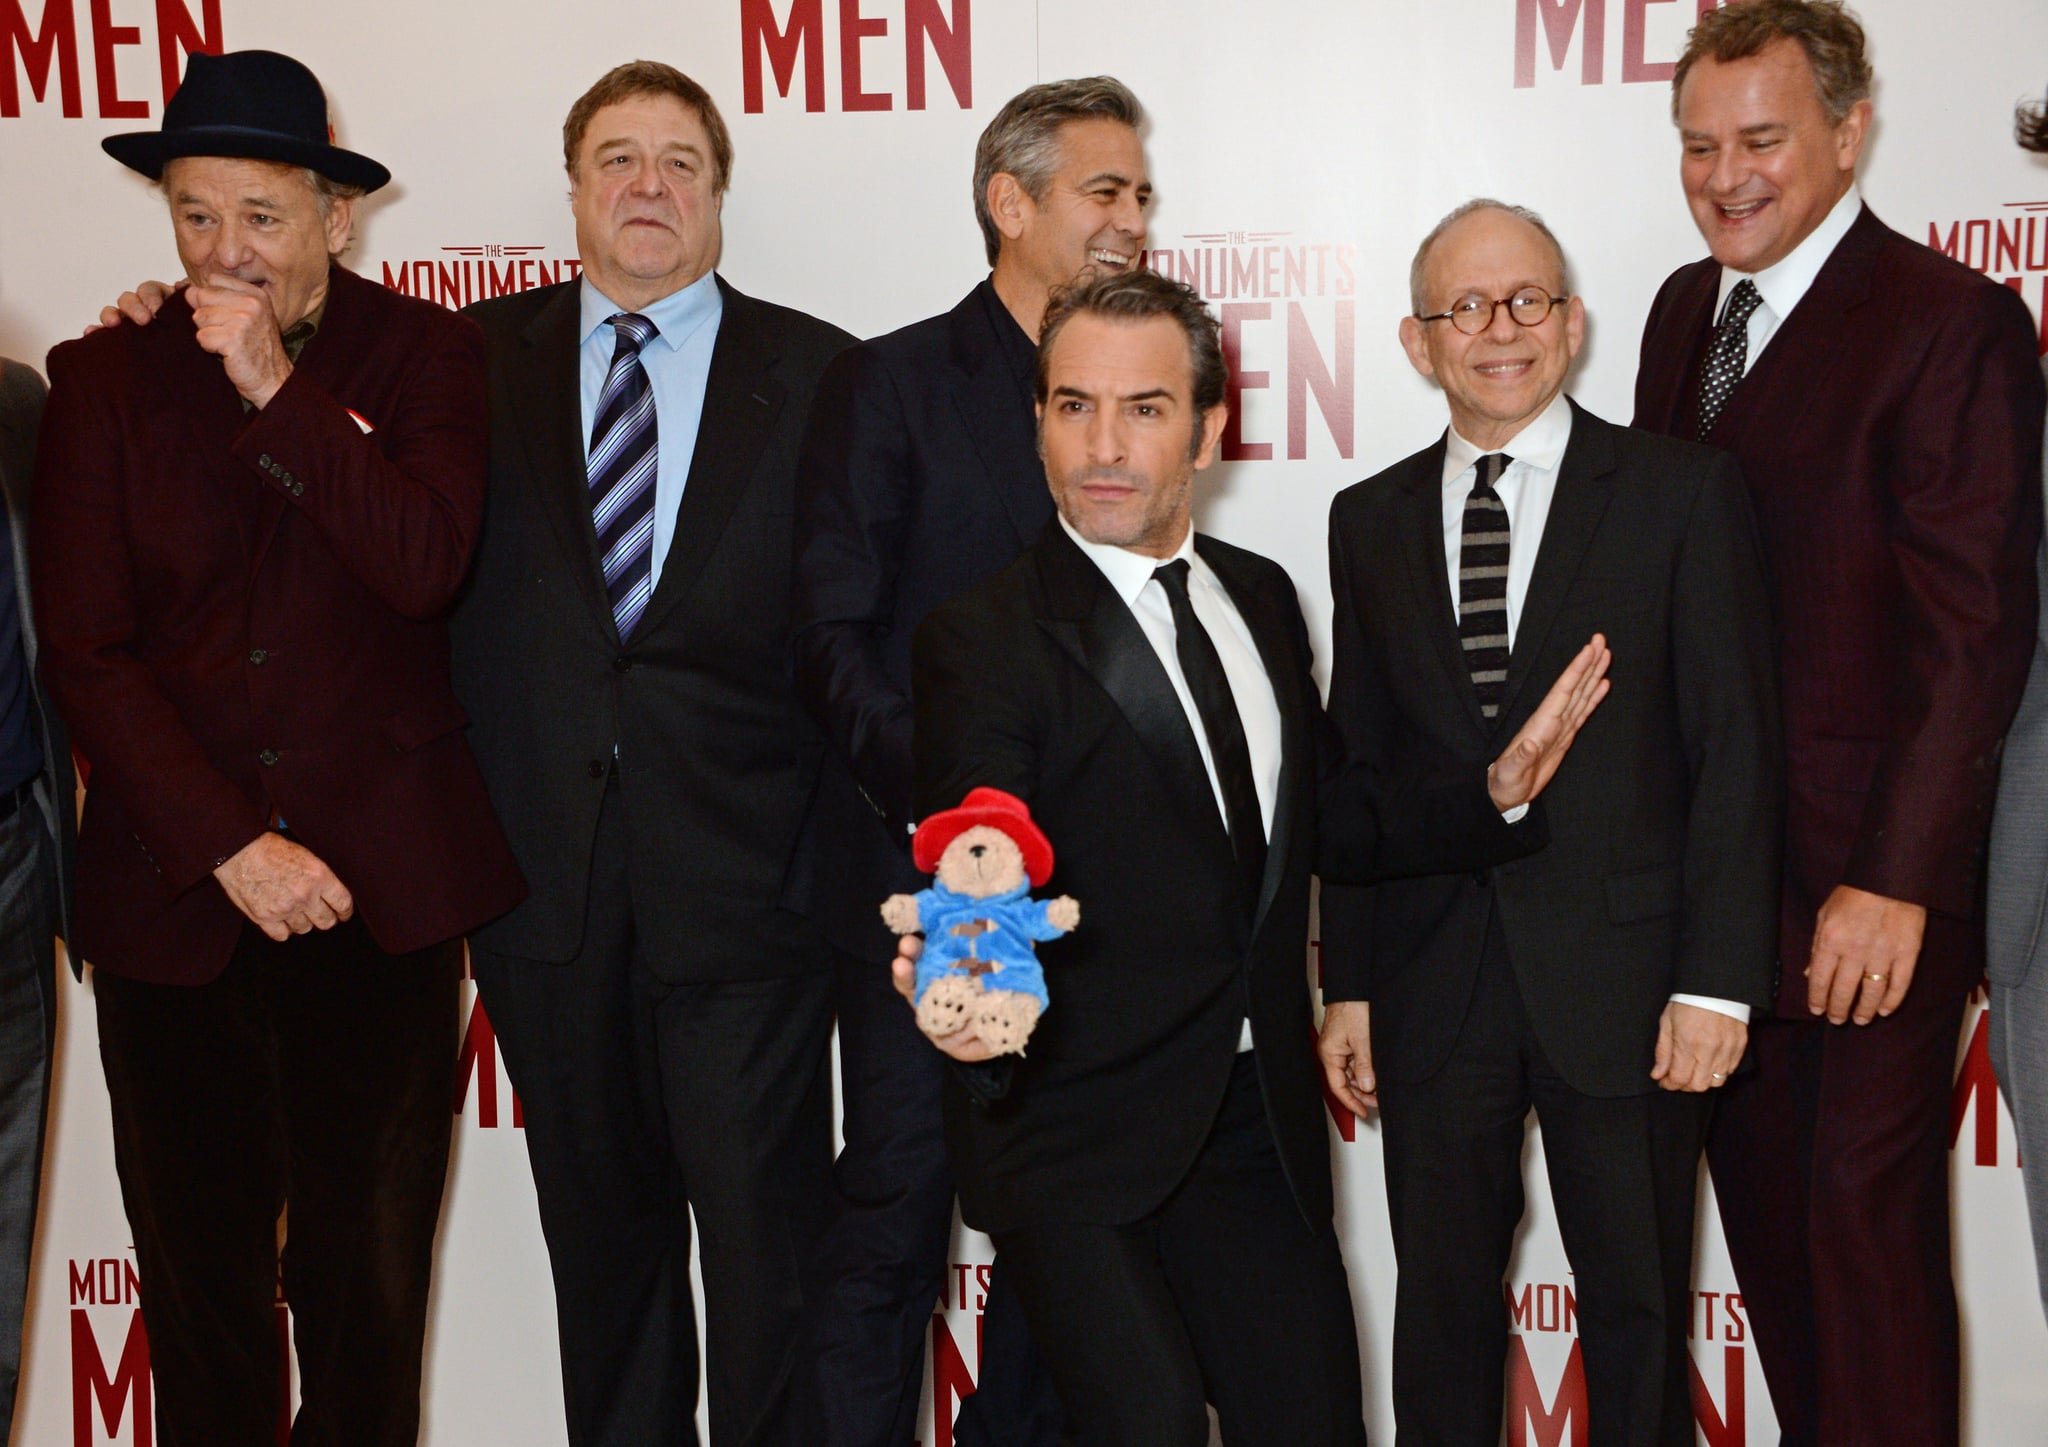 Someone made the mistake of giving these guys a Paddington Bear, which they promptly took silly photos with.